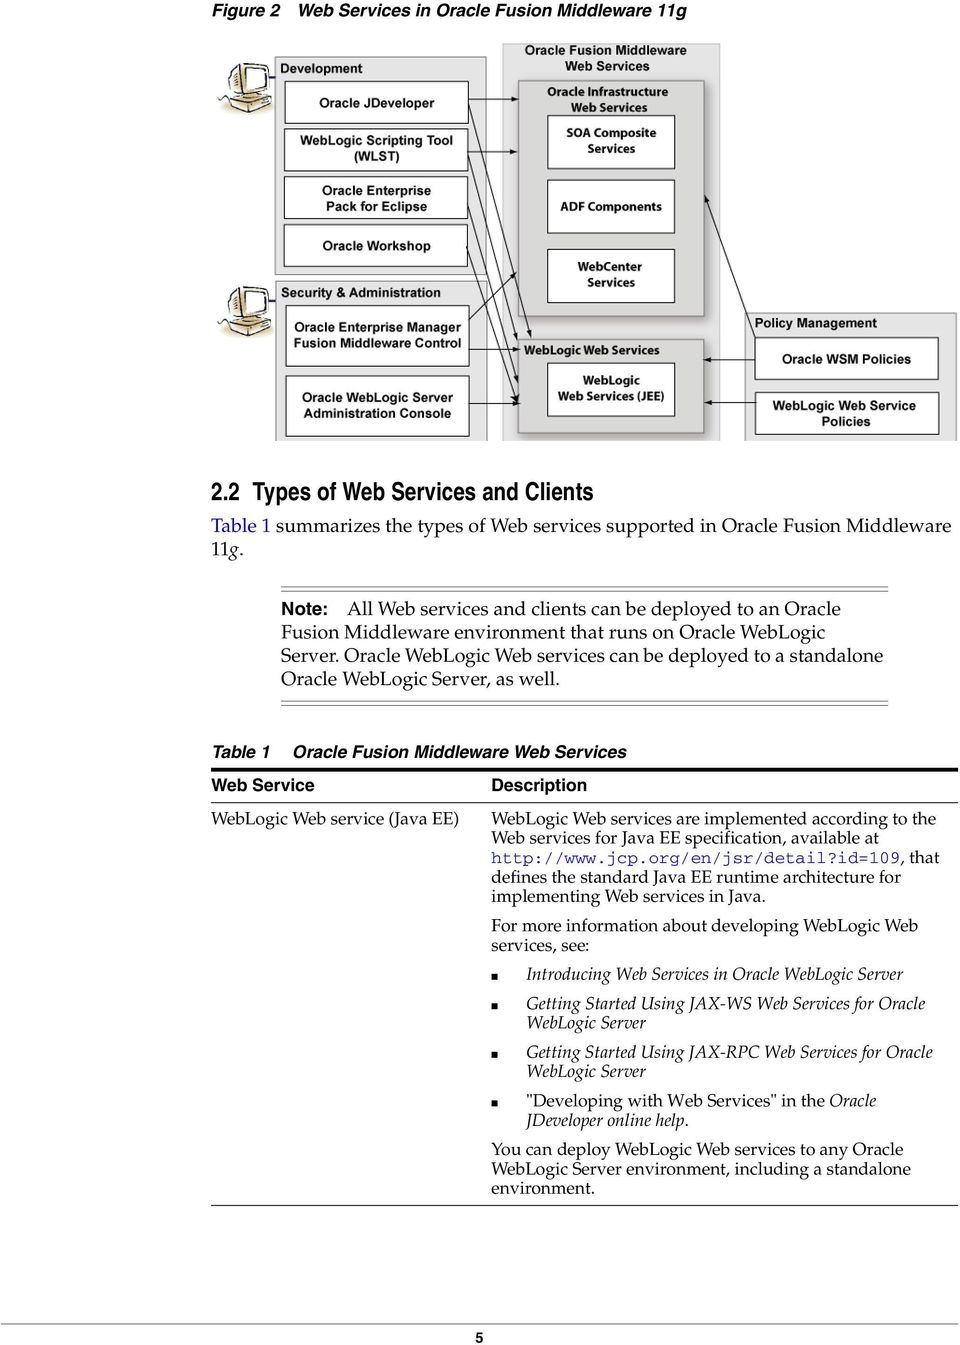 Oracle WebLogic Web services can be deployed to a standalone Oracle WebLogic Server, as well.